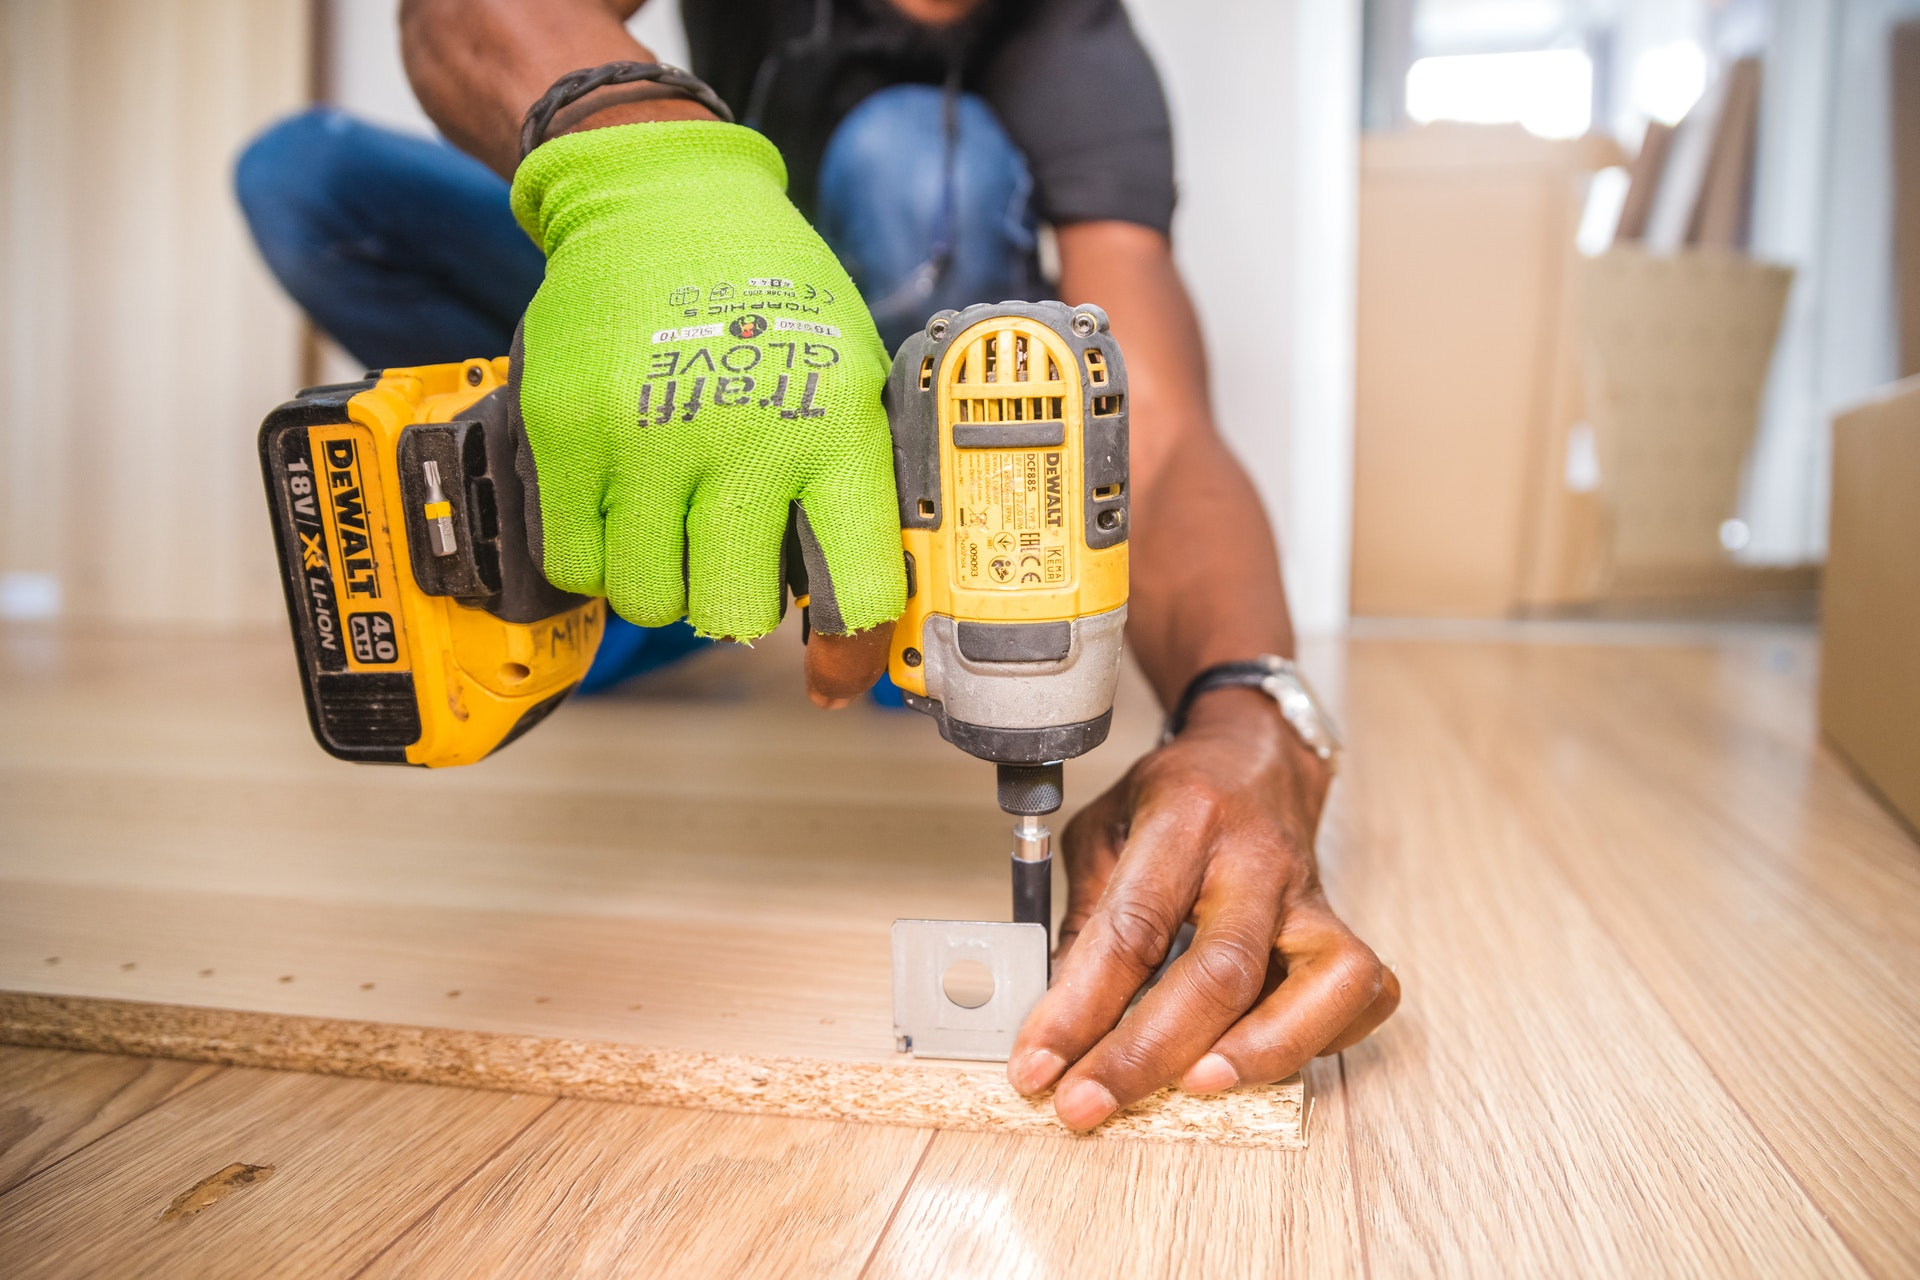 Save Money on Home Remodeling Projects by Following These Tips